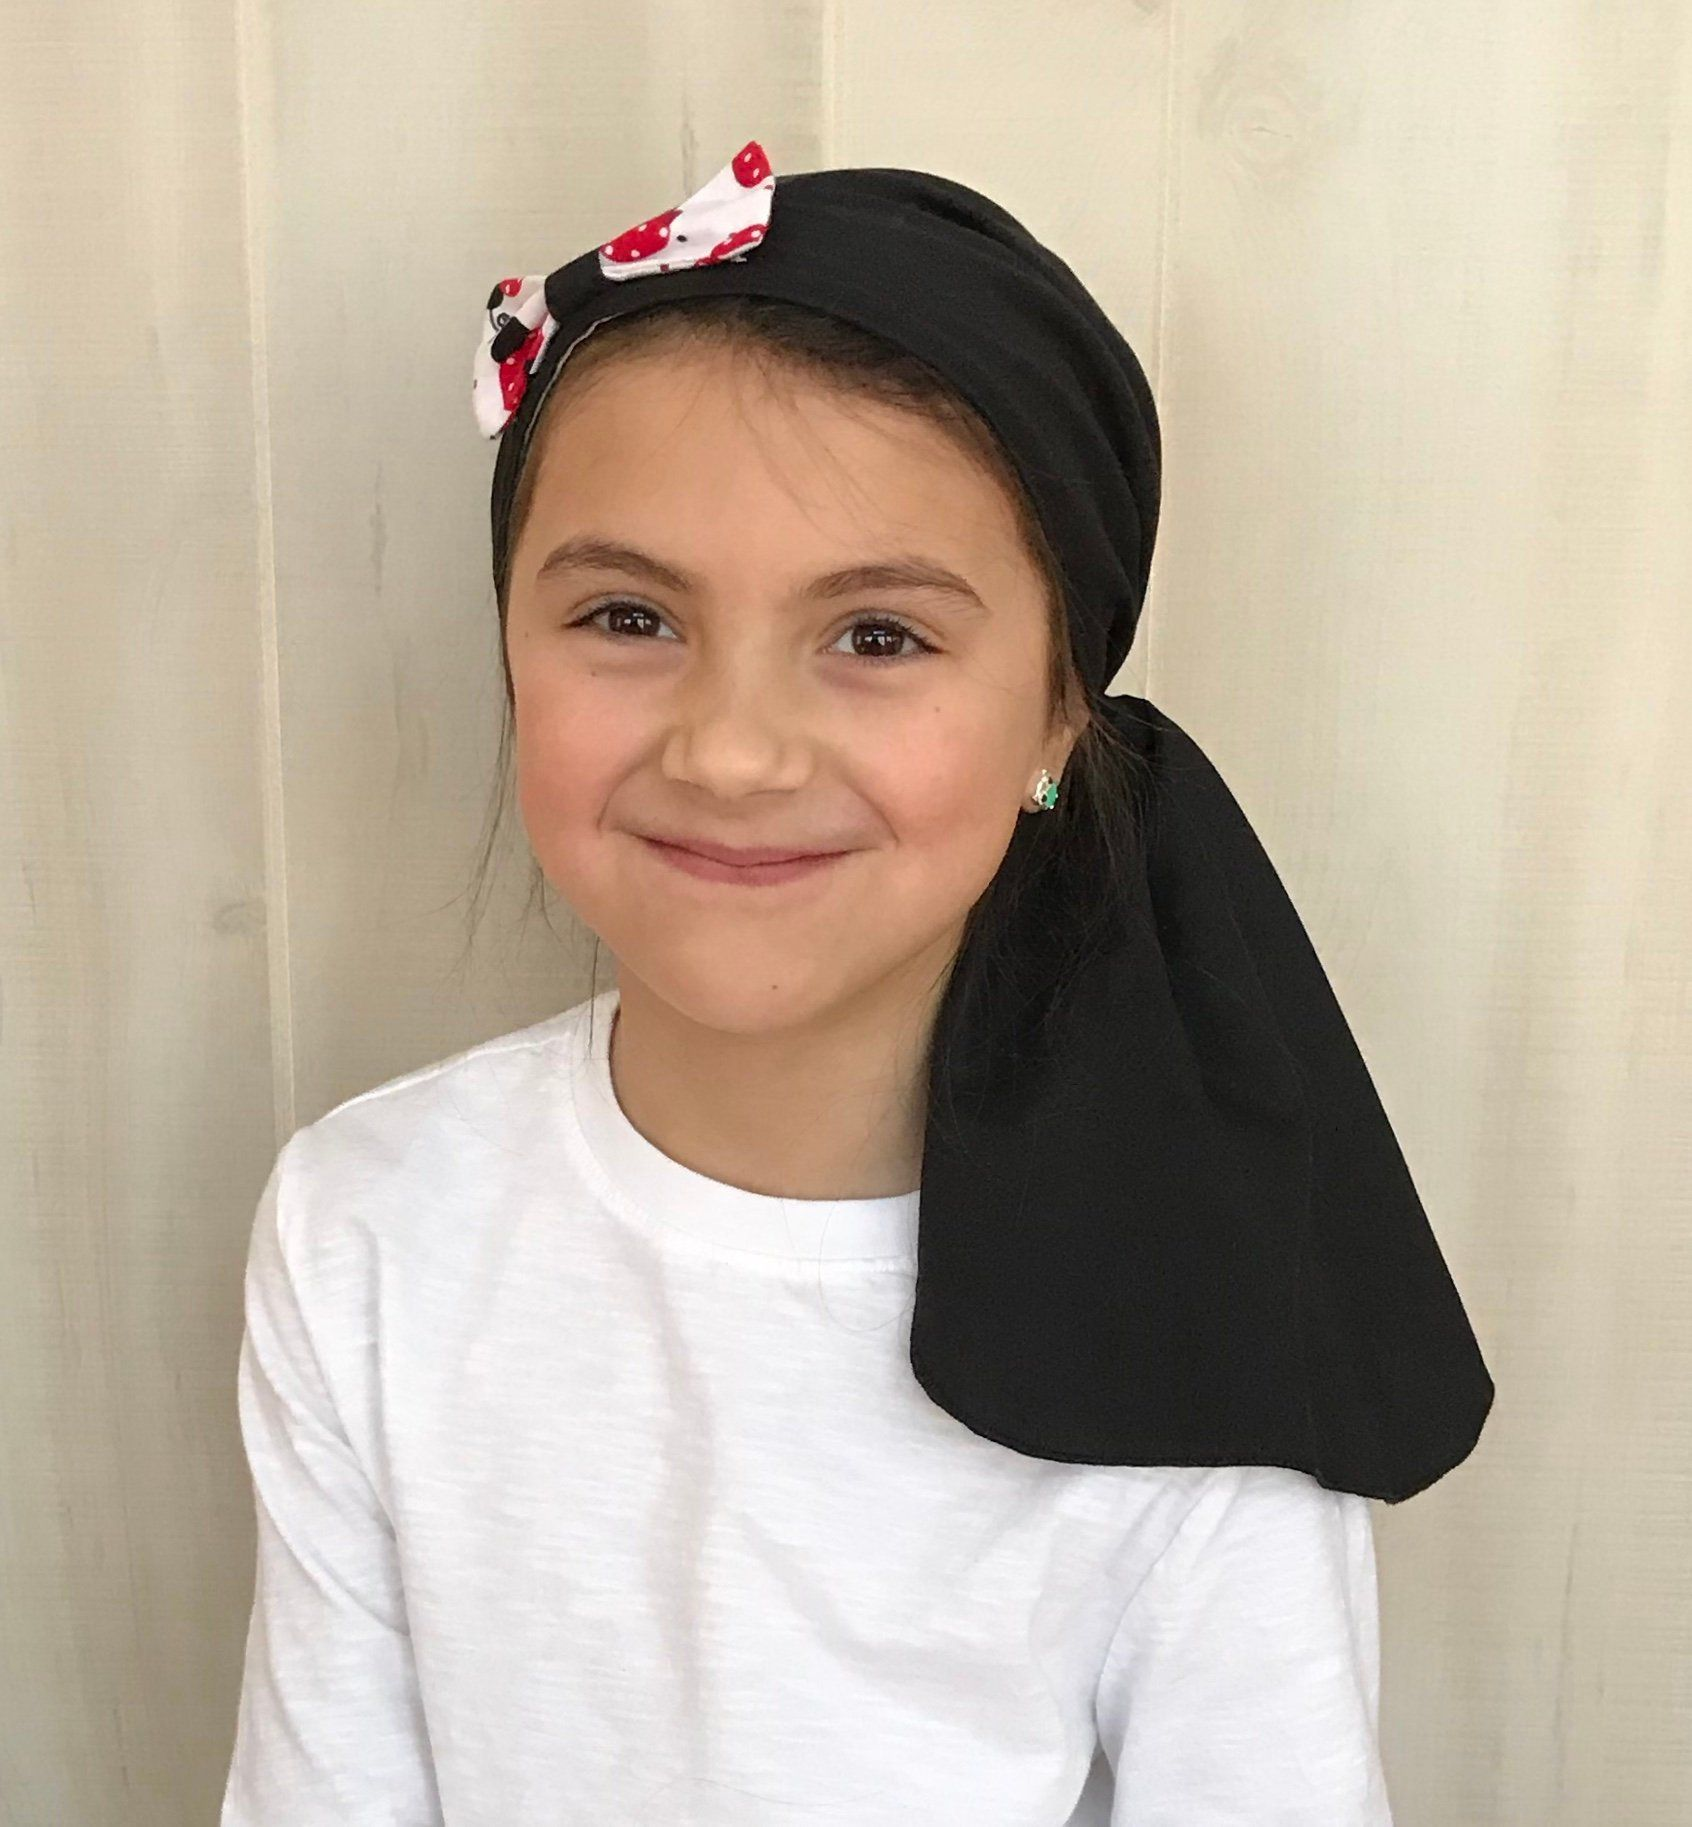 Children's Pre-Tied Head Scarves for children with #hairloss., Girl's #Chemo #Hat, #Cancer #black #HeadCover, #Alopecia #Headwear, #HeadWrap, #CancerGift, #pretied #headscarf #avascarf #lovemyIHC #childhoodcancer #alopeciakids #tieheadscarves